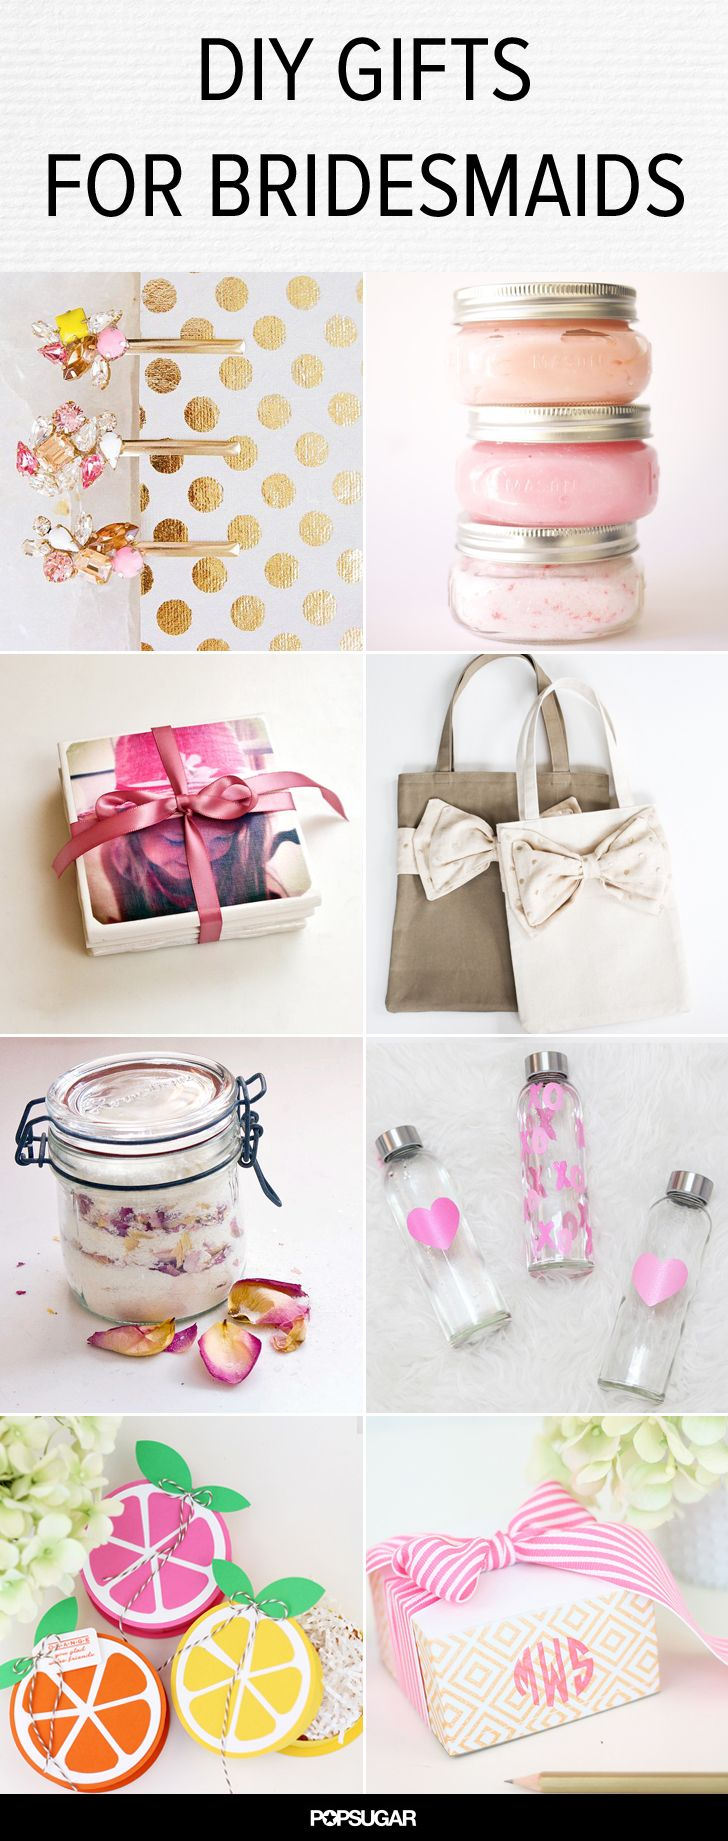 48 Beautiful Diy Bridesmaid Gifts That Are Chic And Cheap Diy Bridesmaid Gifts Bridesmaid Diy Gifts For Wedding Party